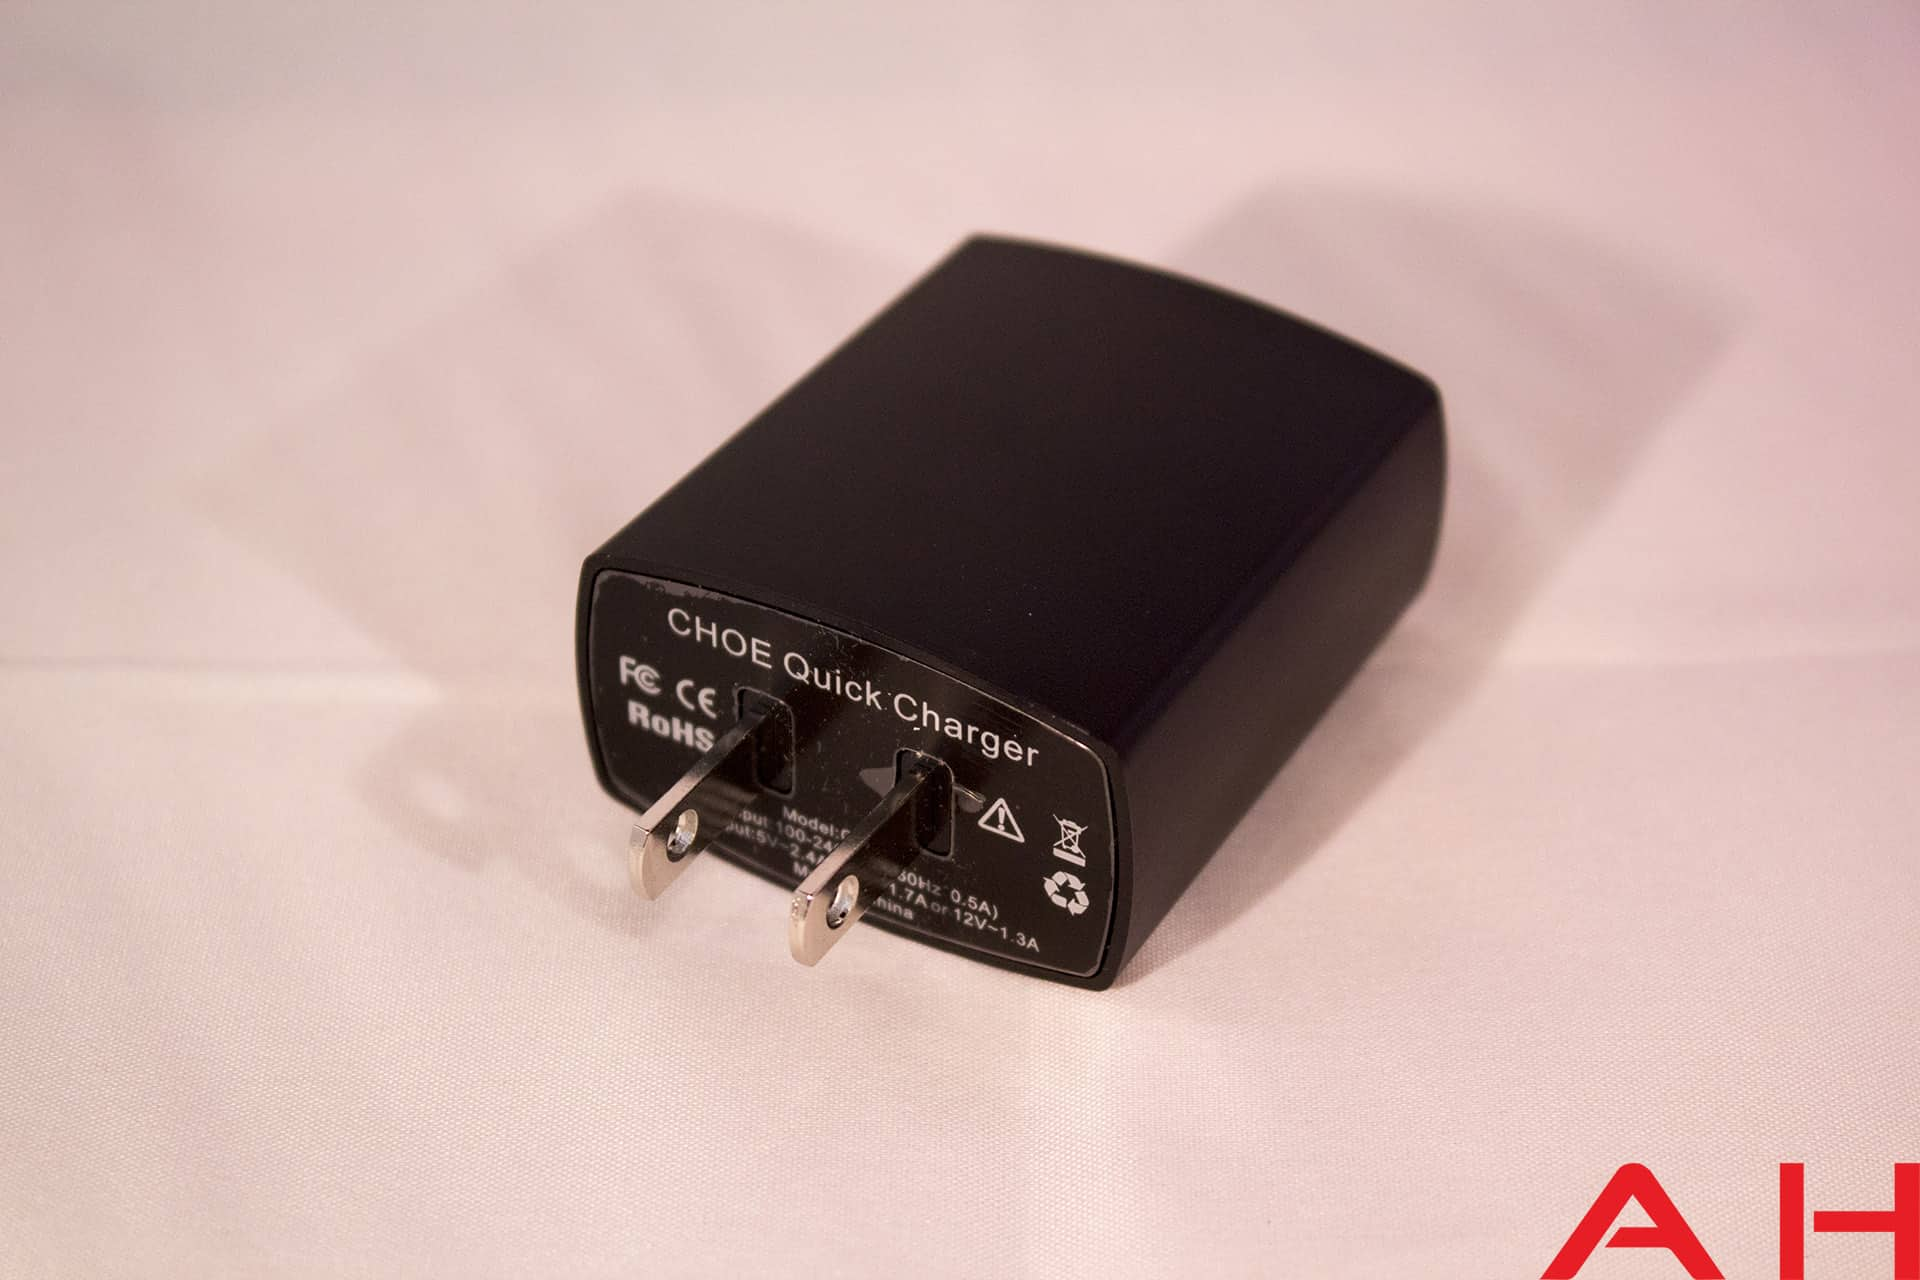 Choetech quickcharge 3